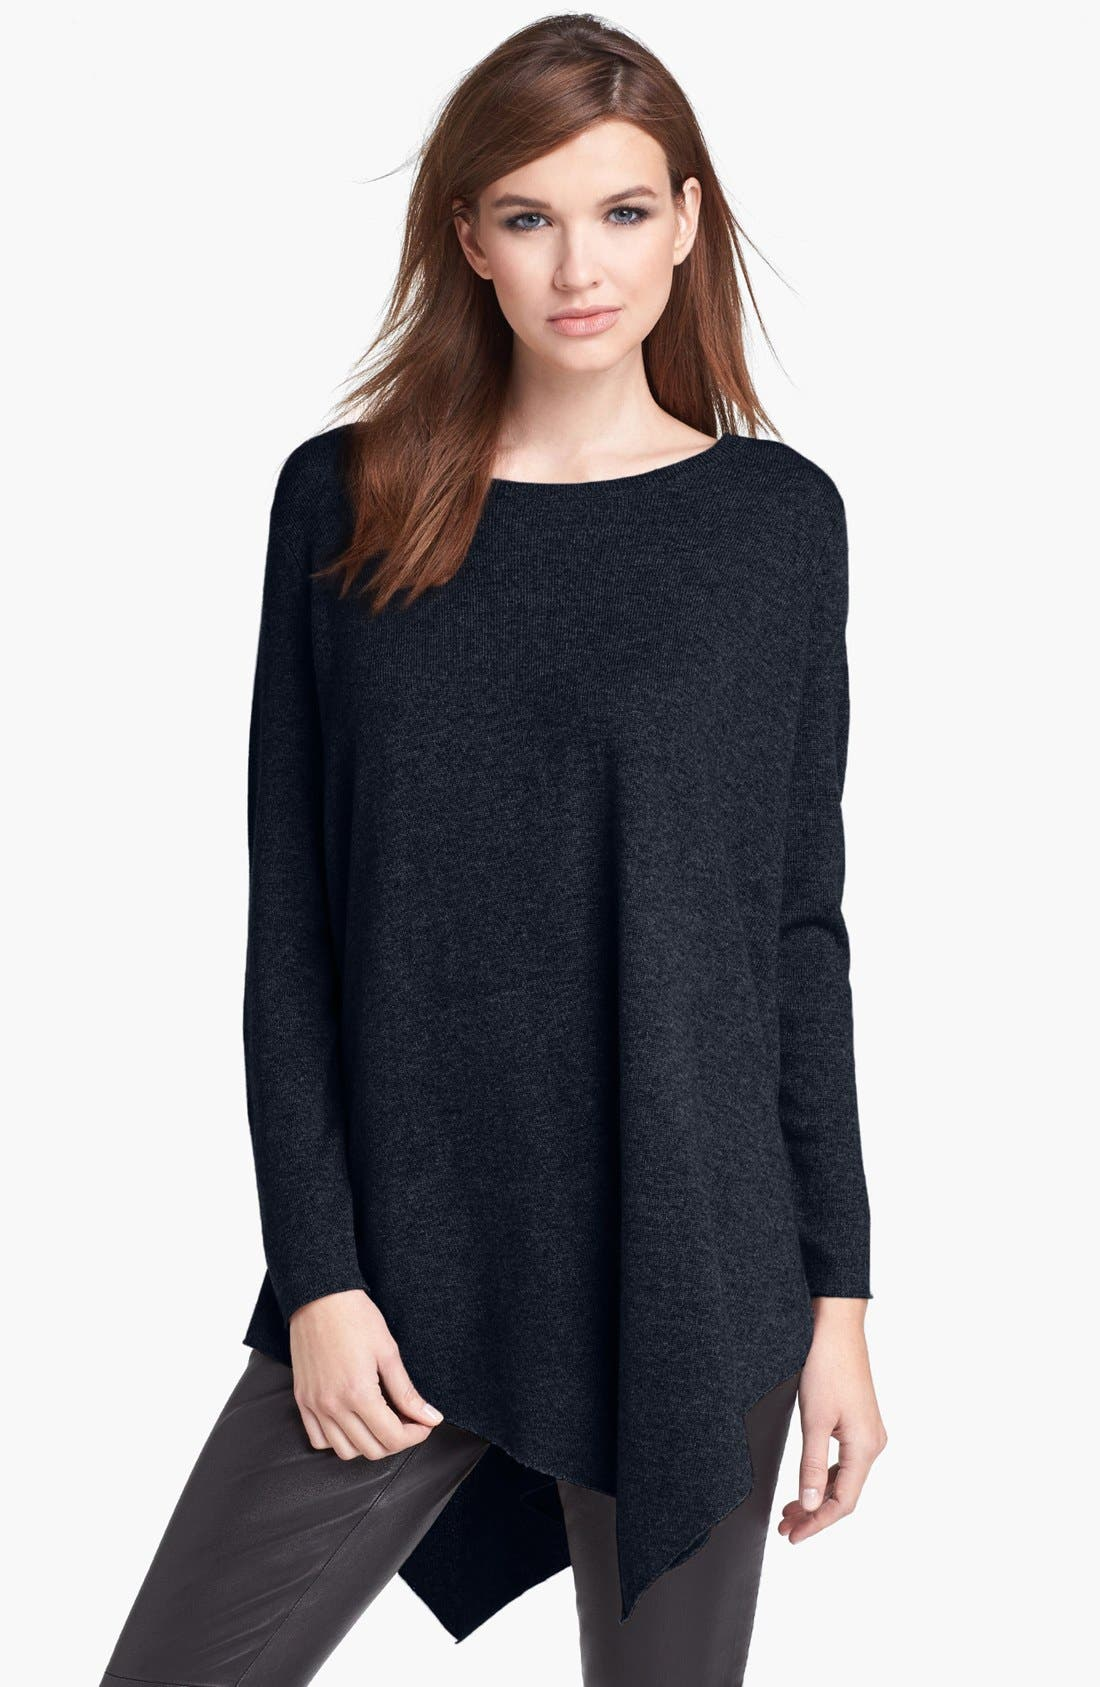 Alternate Image 1 Selected - Joie 'Tambrel' Asymmetrical Sweater Tunic